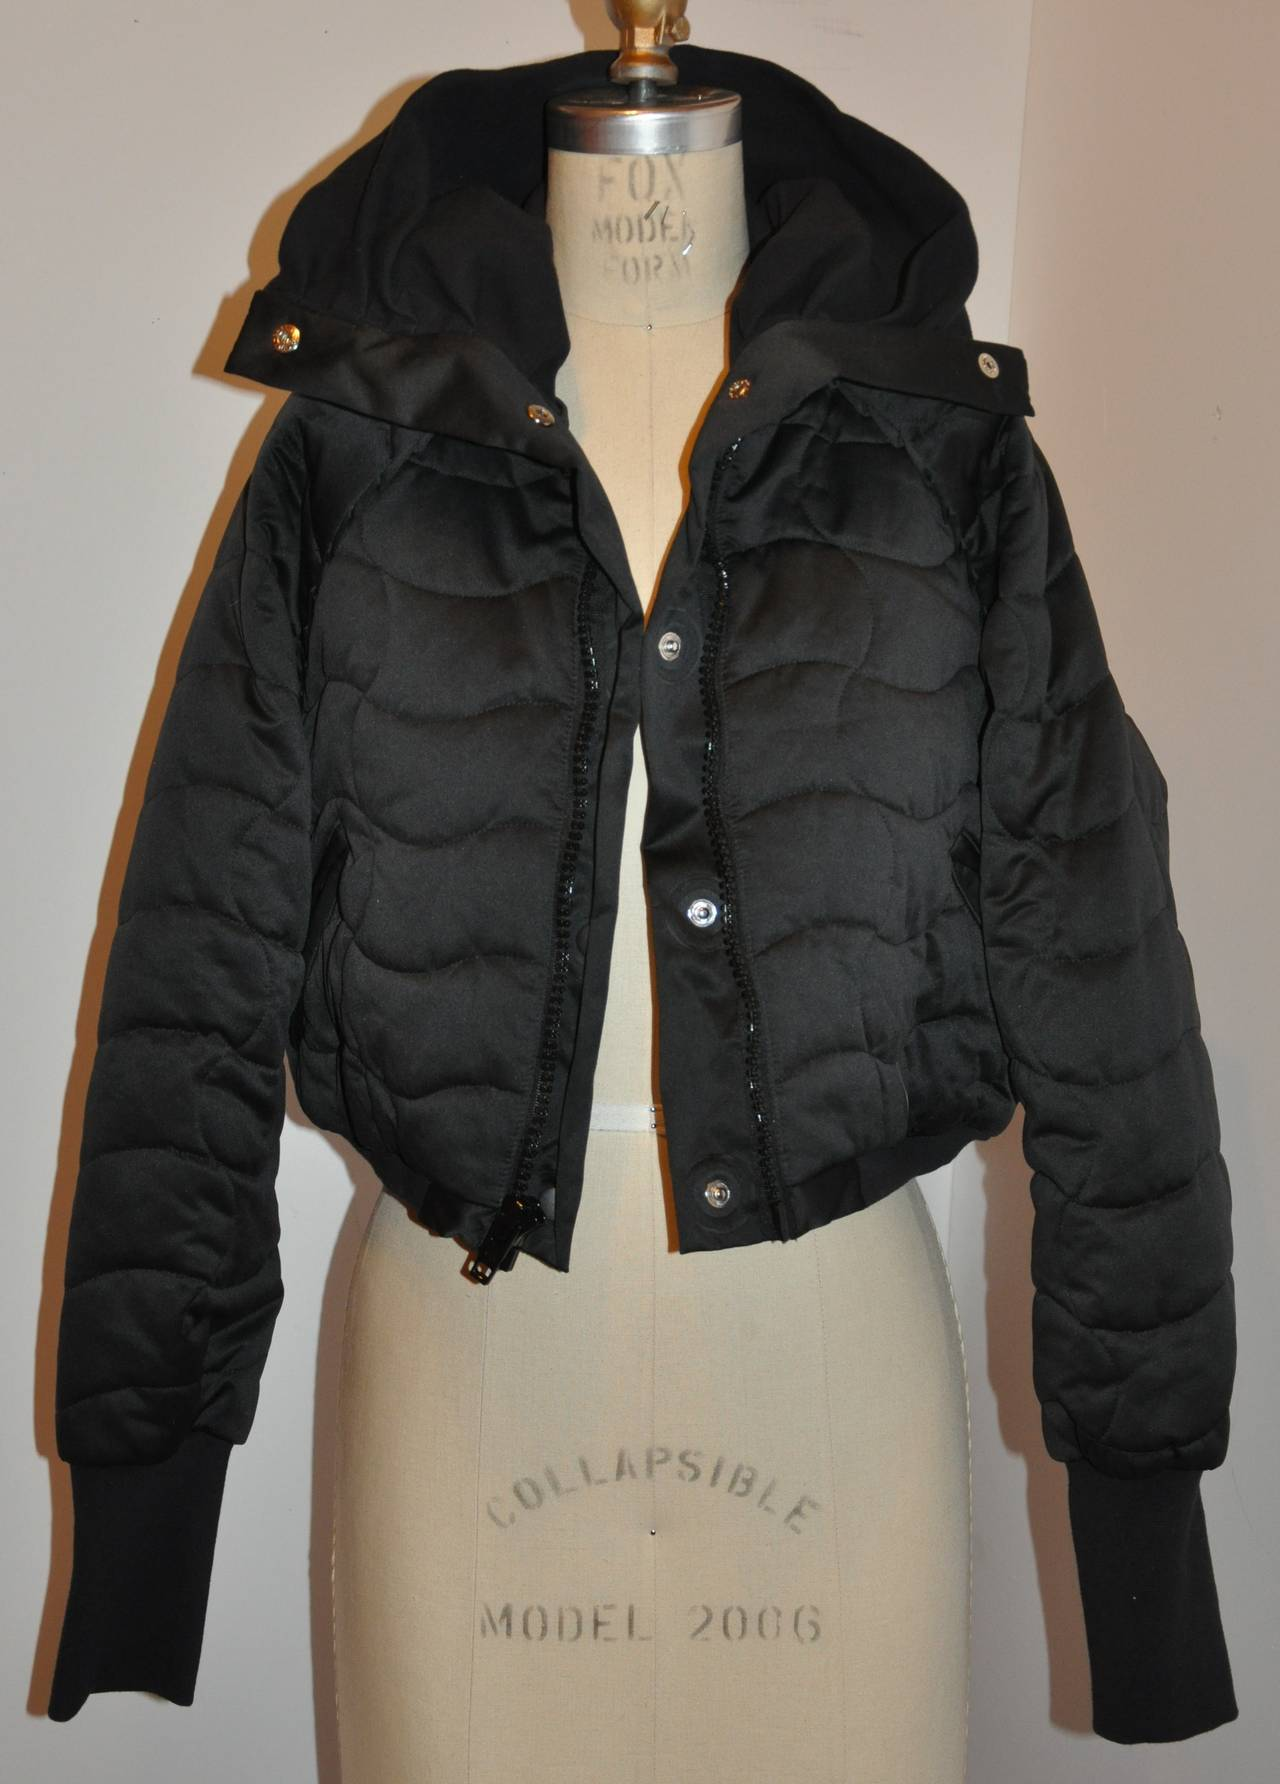 Stella McCartney wicked extreme high-collar black quilted cropped puffer zipper jacket has the options to use the interior snaps located underneath the front zipper. There are two front set-in pocket with detailed small flat pleats near the arms